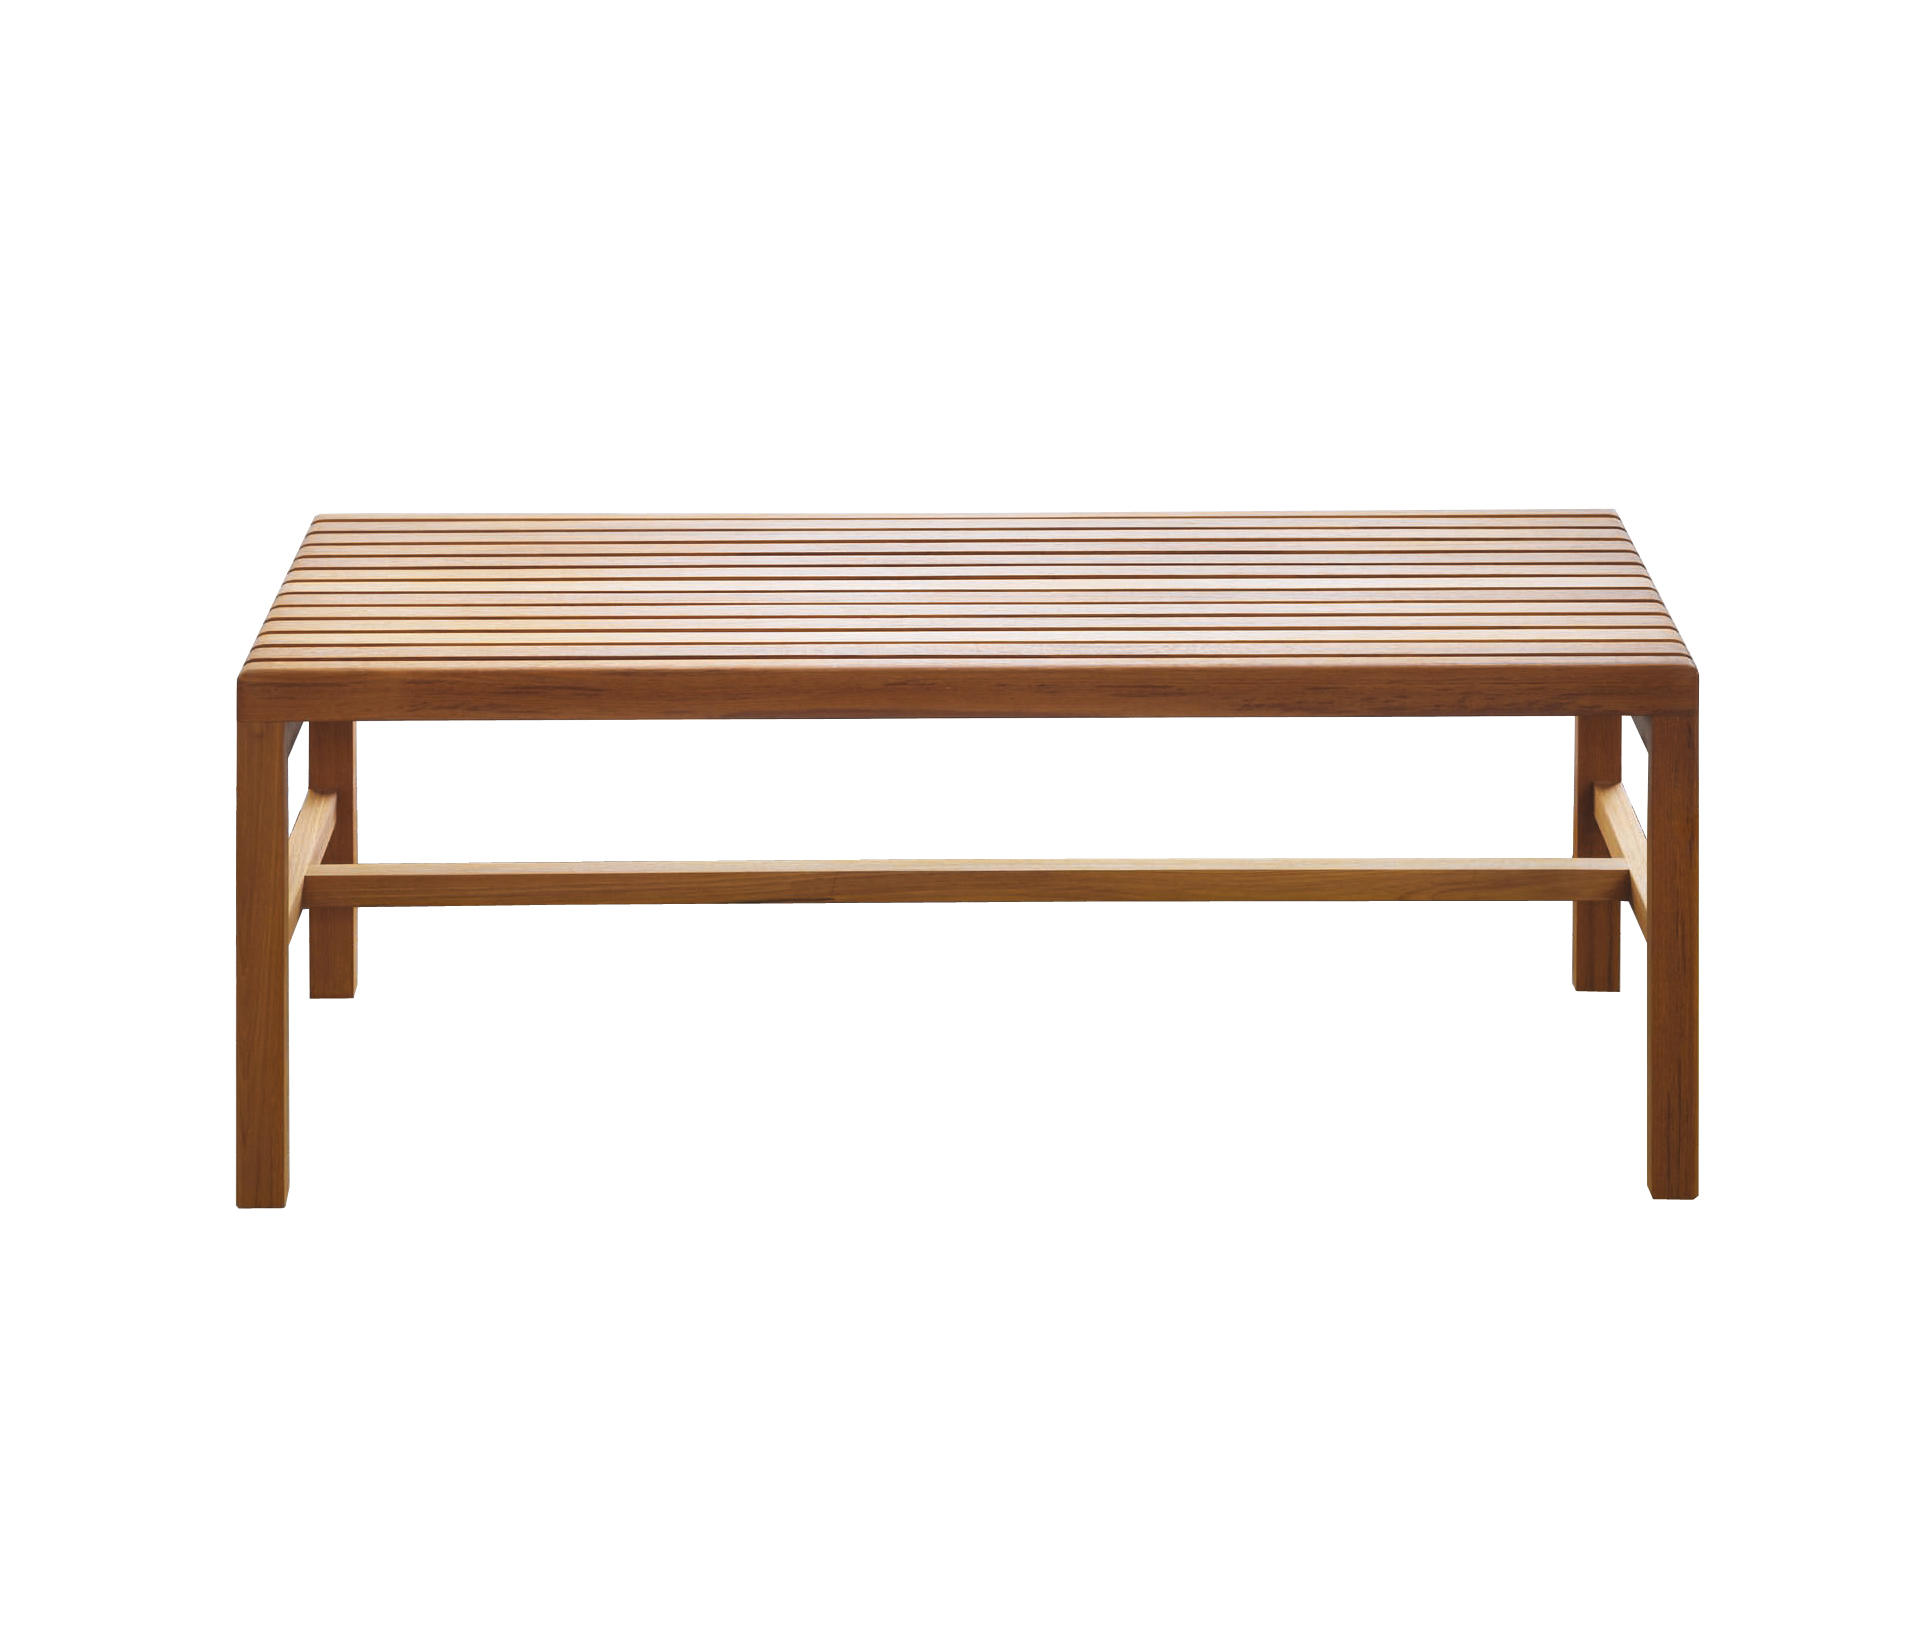 SLAT BENCH - Garden benches from BassamFellows | Architonic